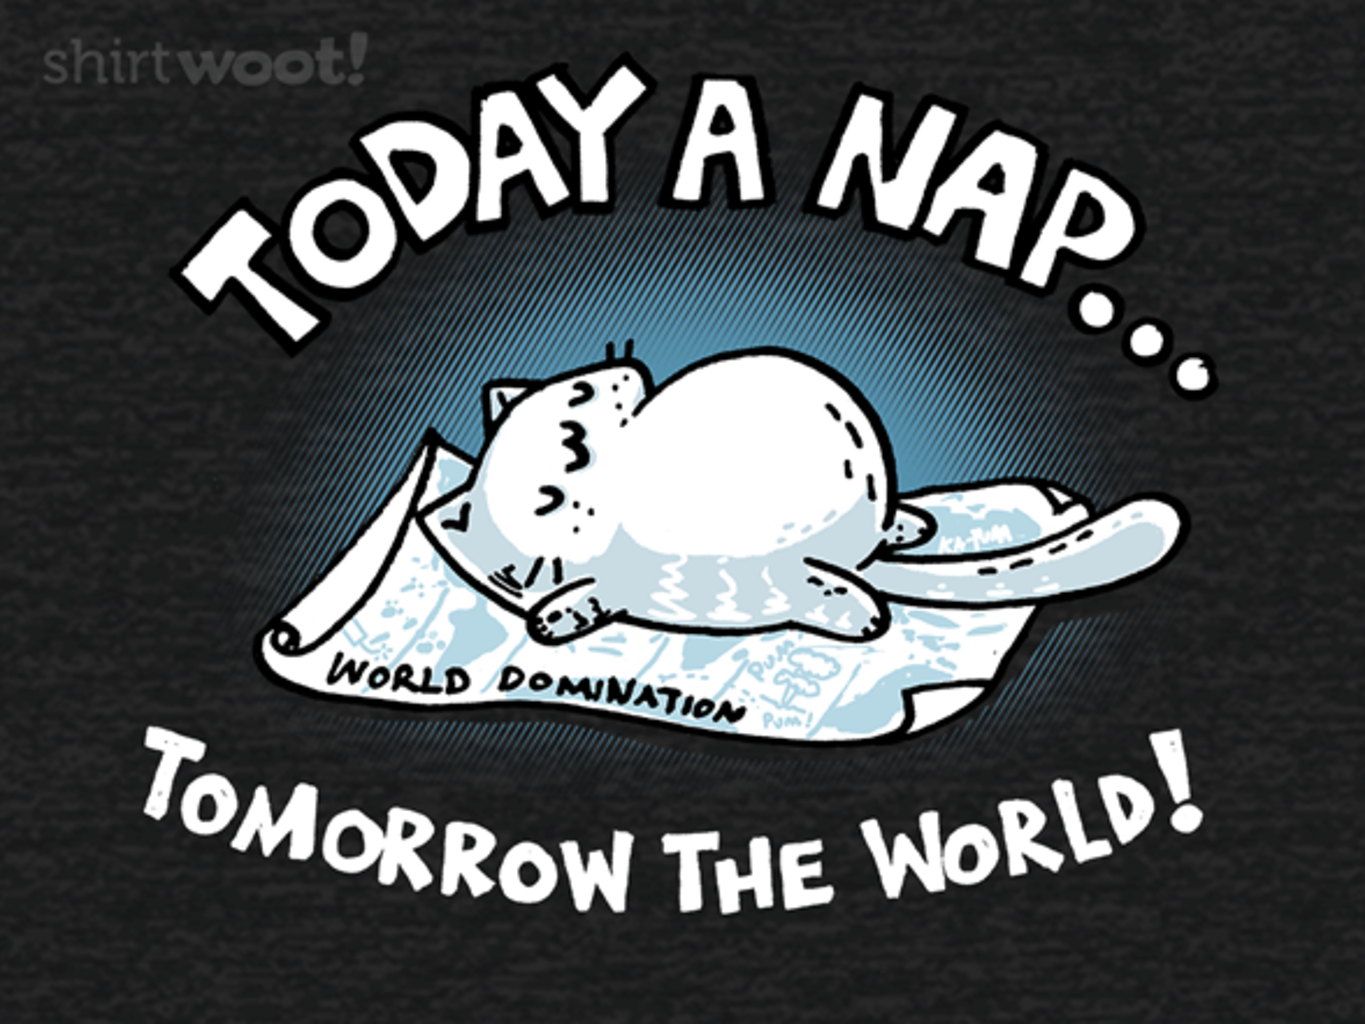 Woot!: Today, a Nap!